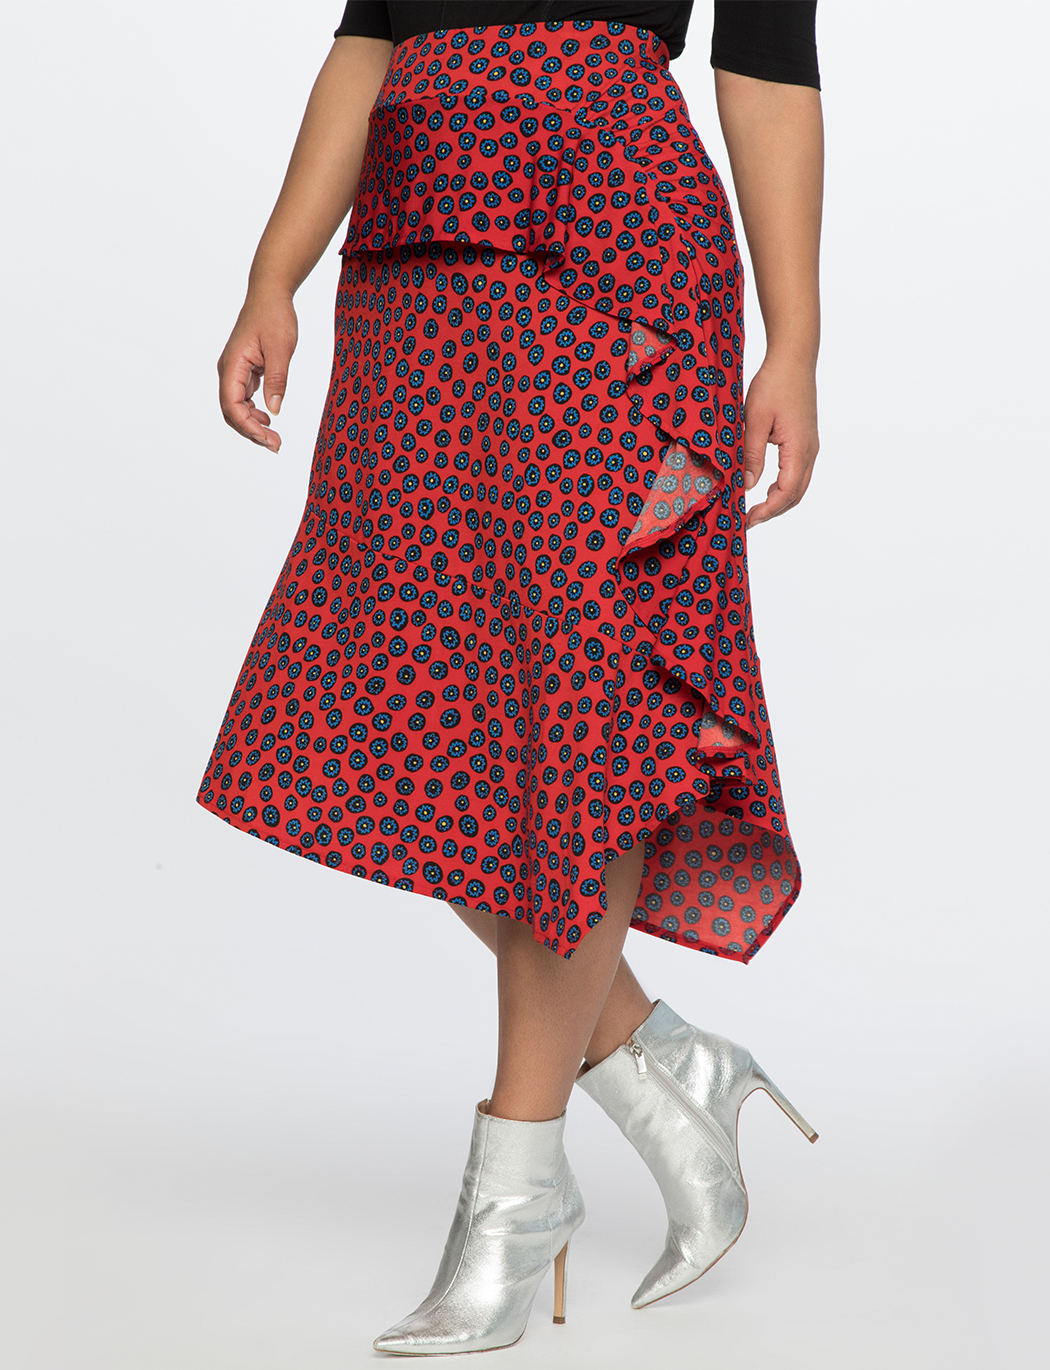 Printed Skirt With Ruffle